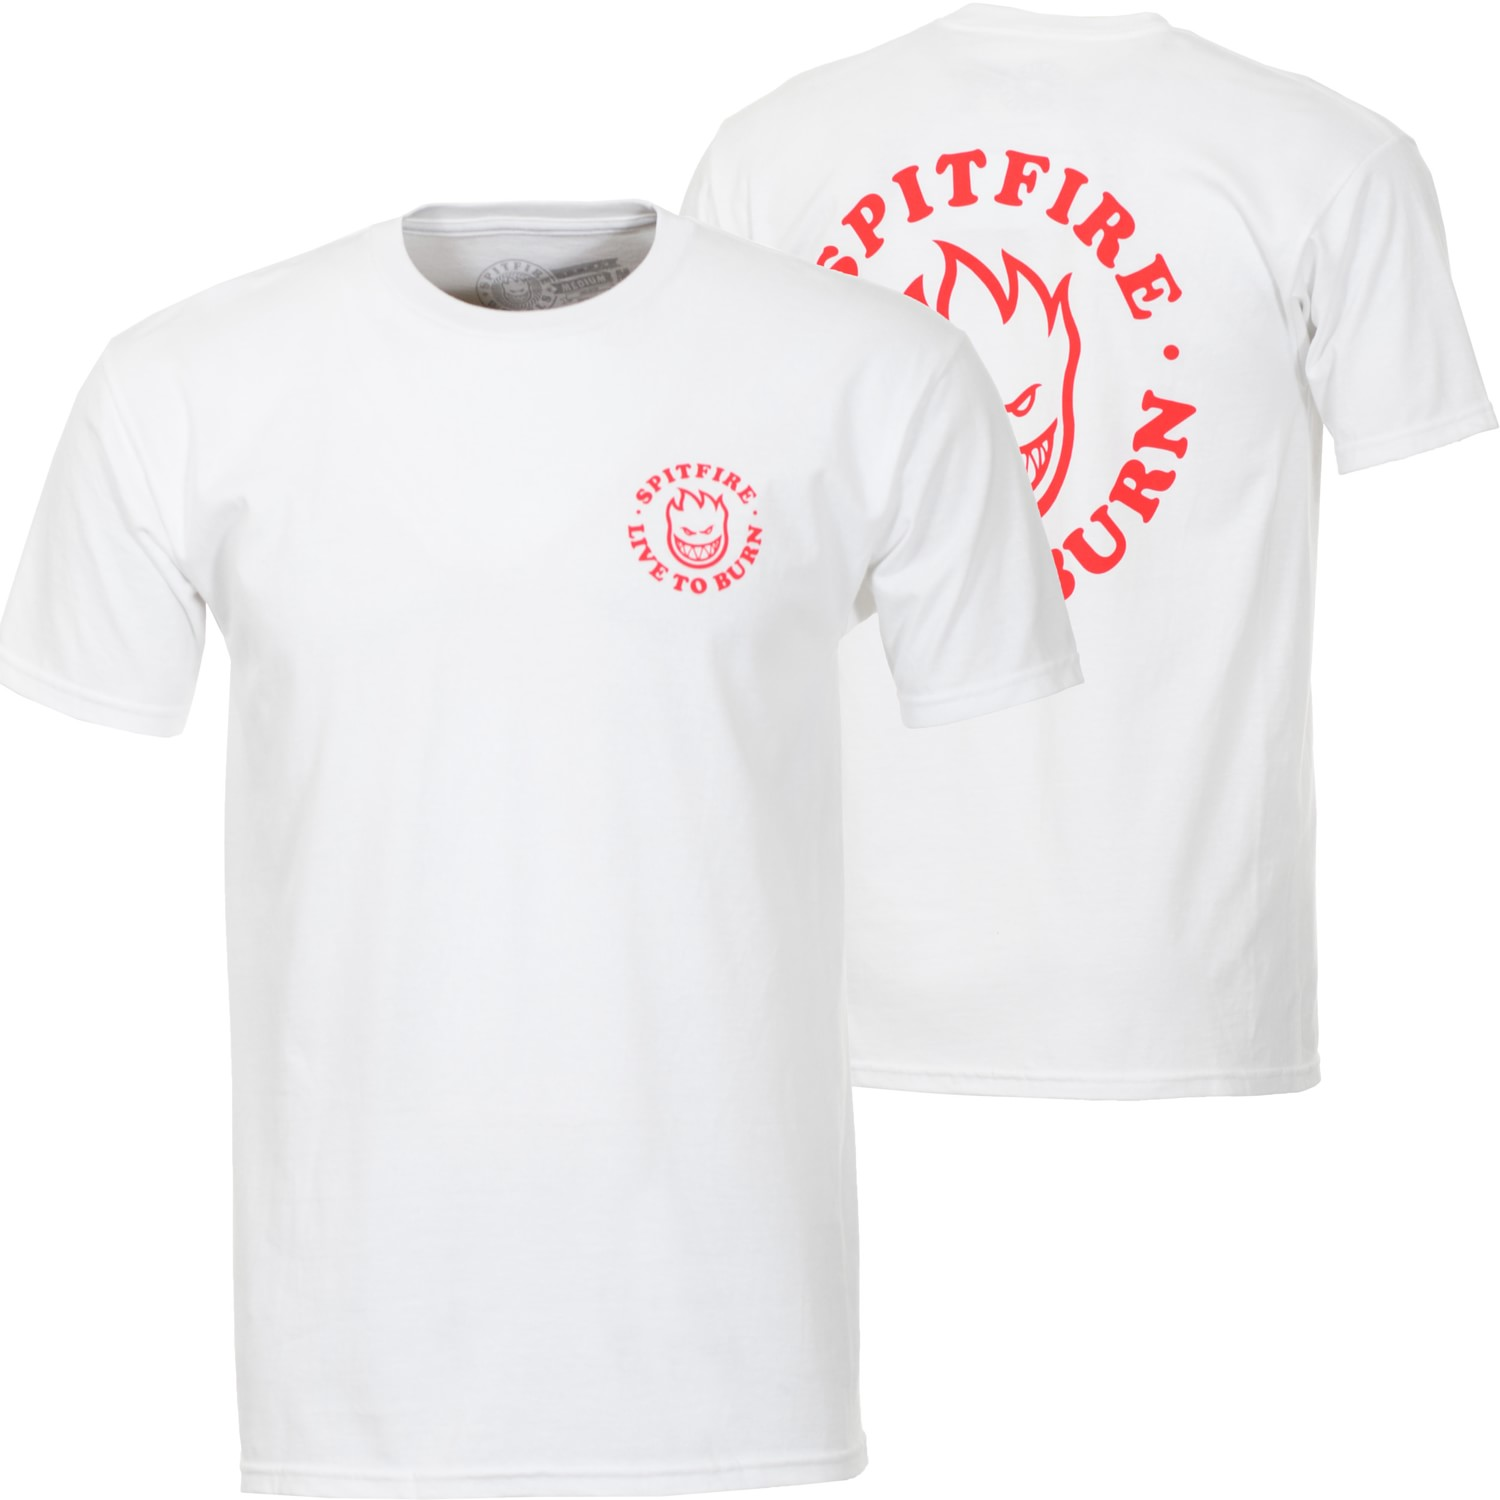 edc6455a4c71e0 Spitfire LTB Bighead White/Red Tee. Buy it now from Clines!